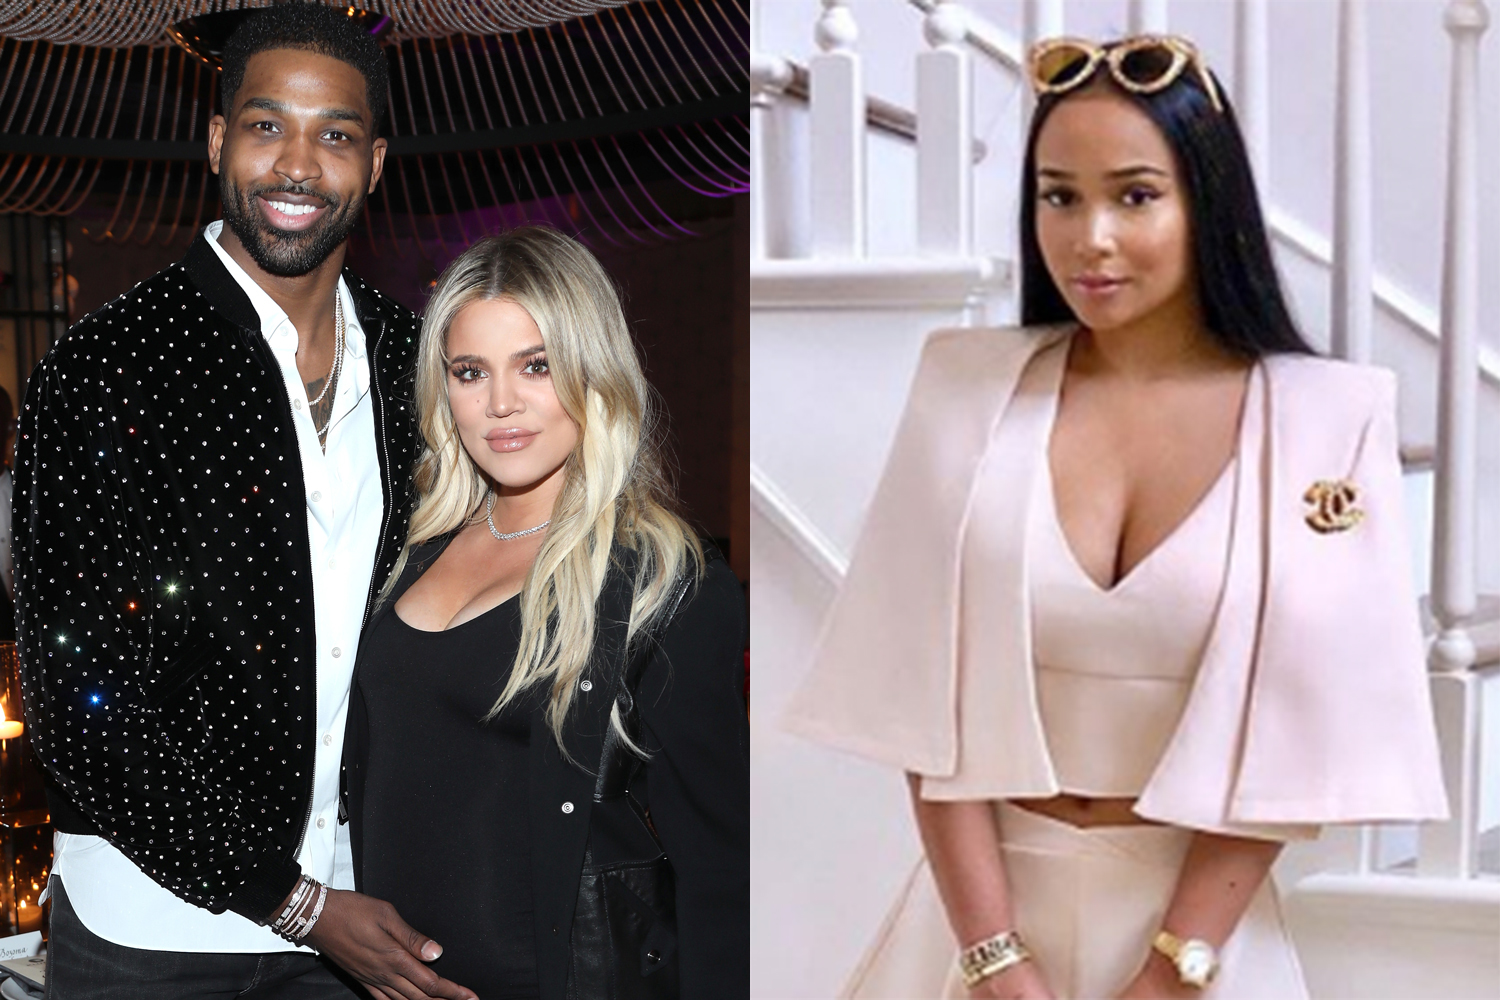 jordan-craig-confirmed-that-tristan-thompson-cheated-with-khloe-kardashian-while-she-was-pregnant-blogger-reveals-she-was-put-on-bed-rest-due-to-stress